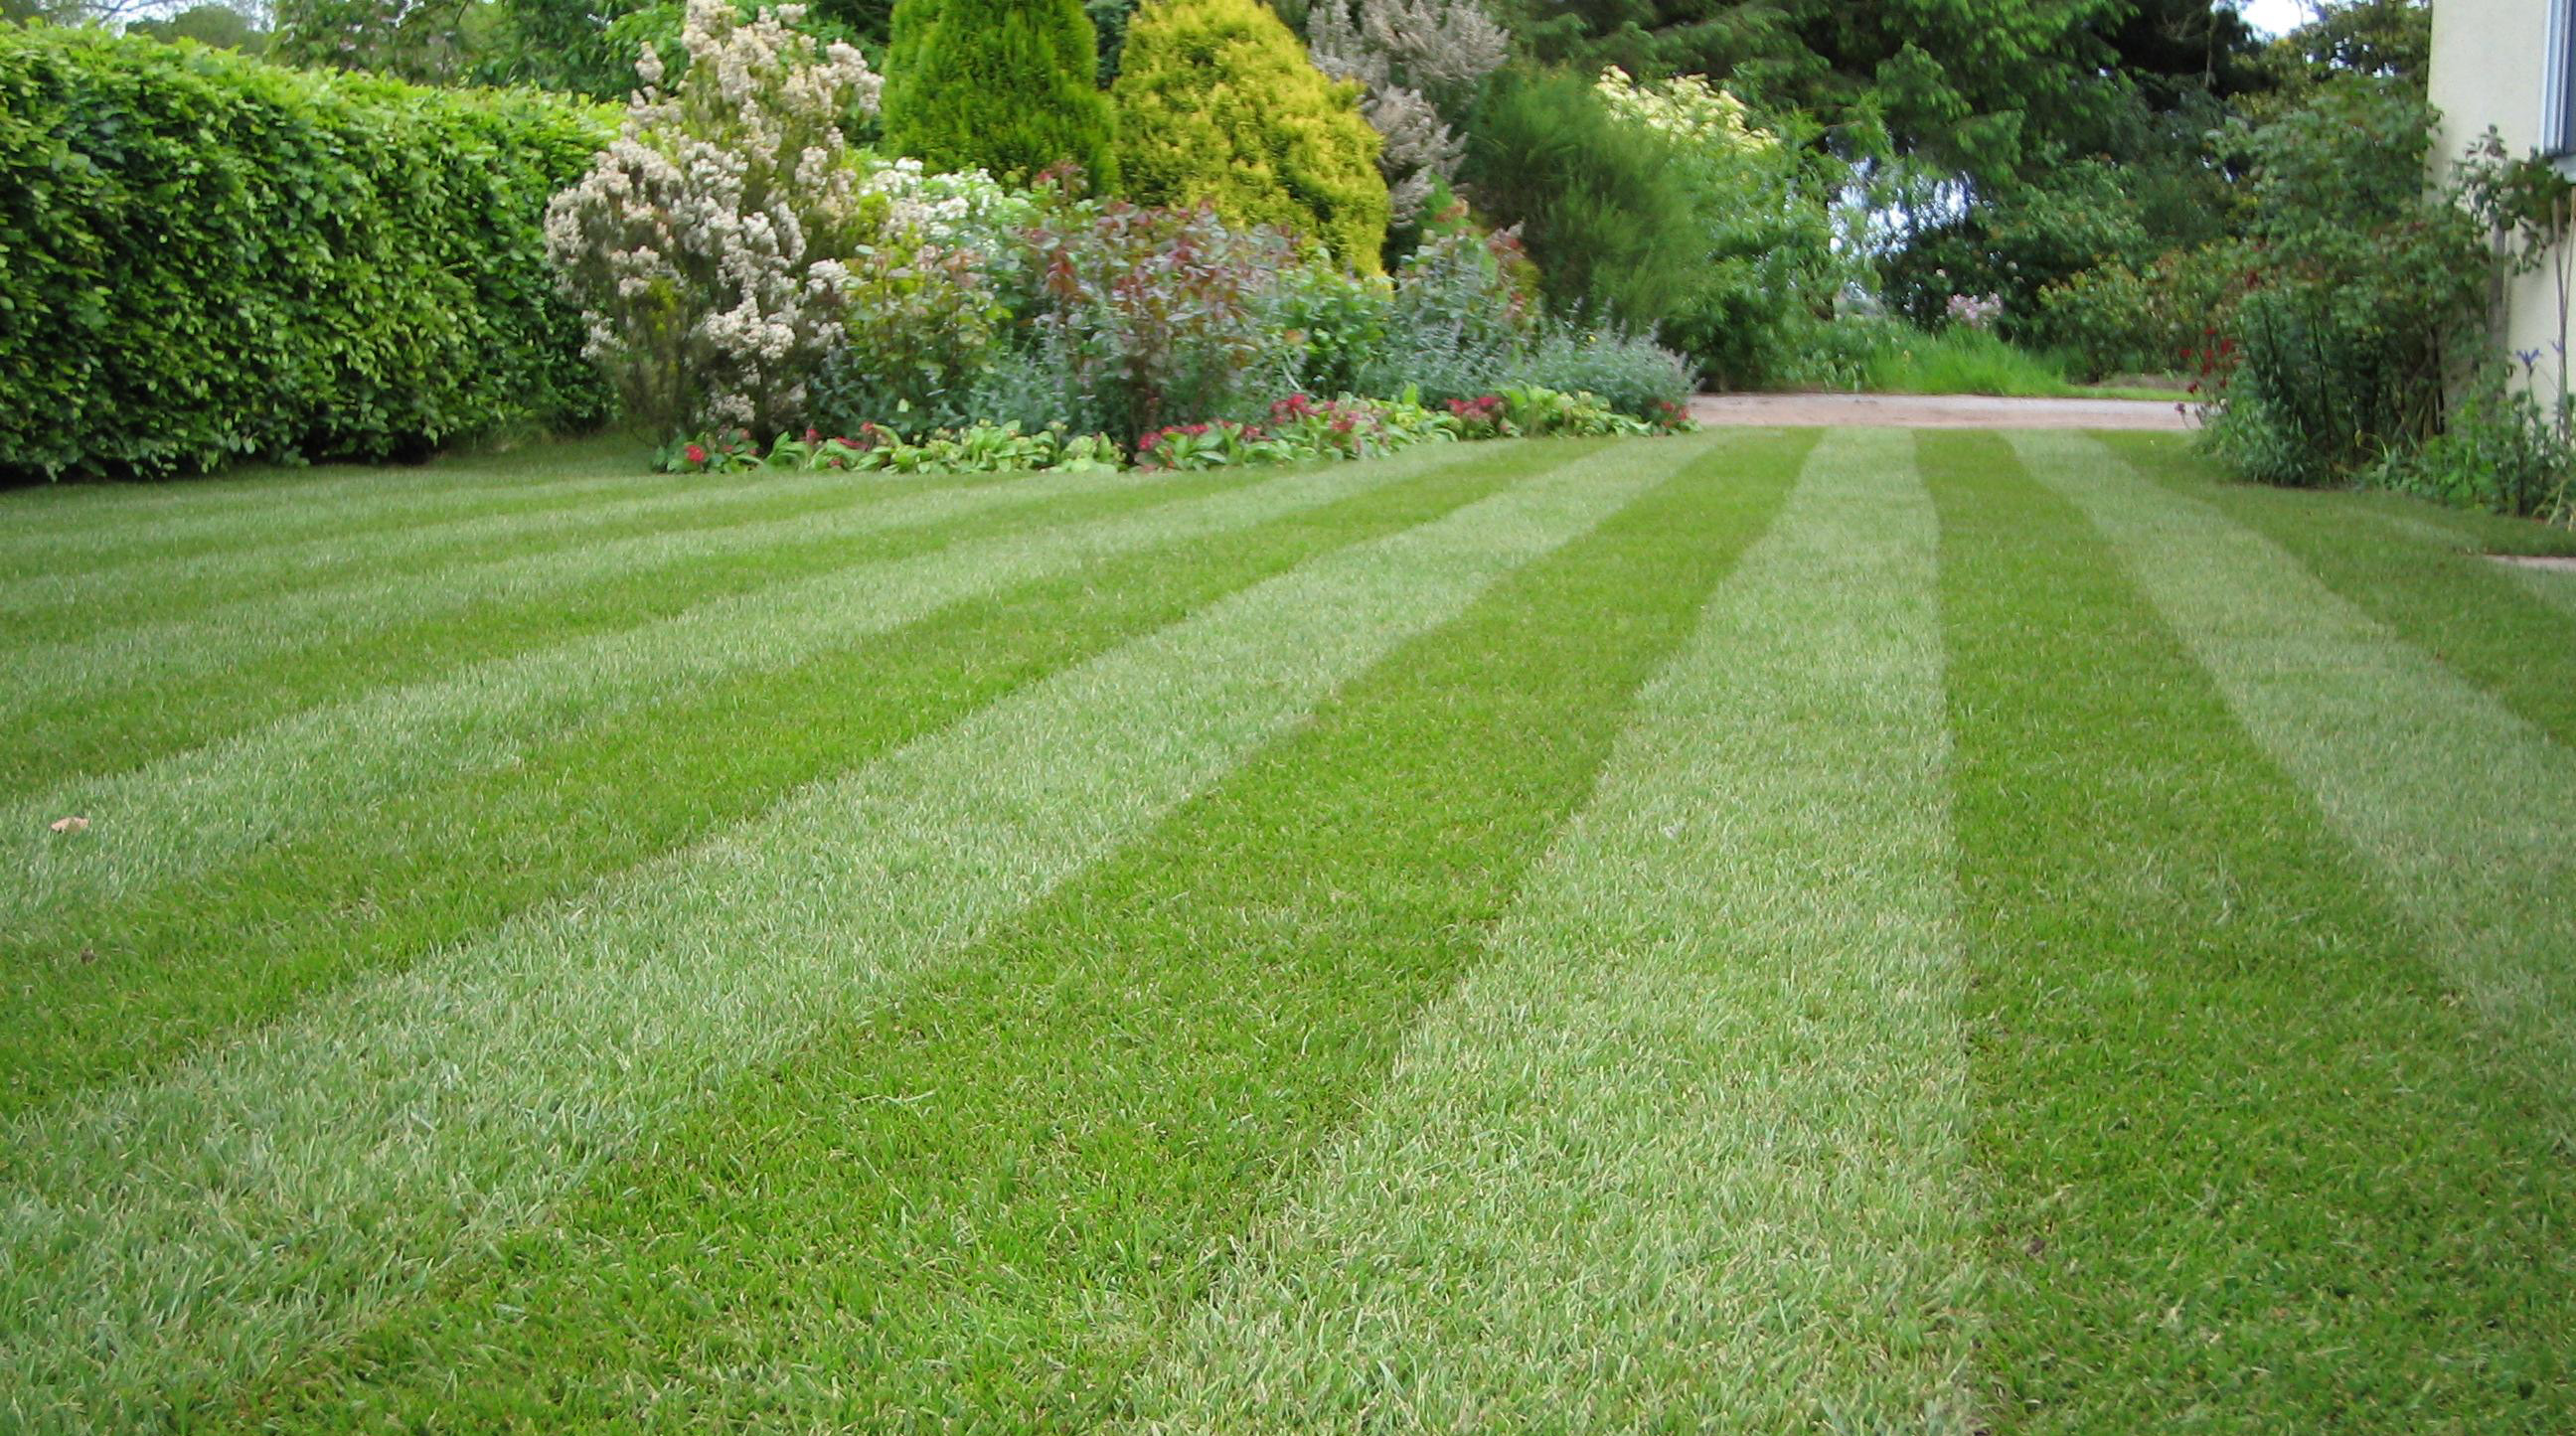 Lawn Maintenance Tips to Help Save Irrigation Water